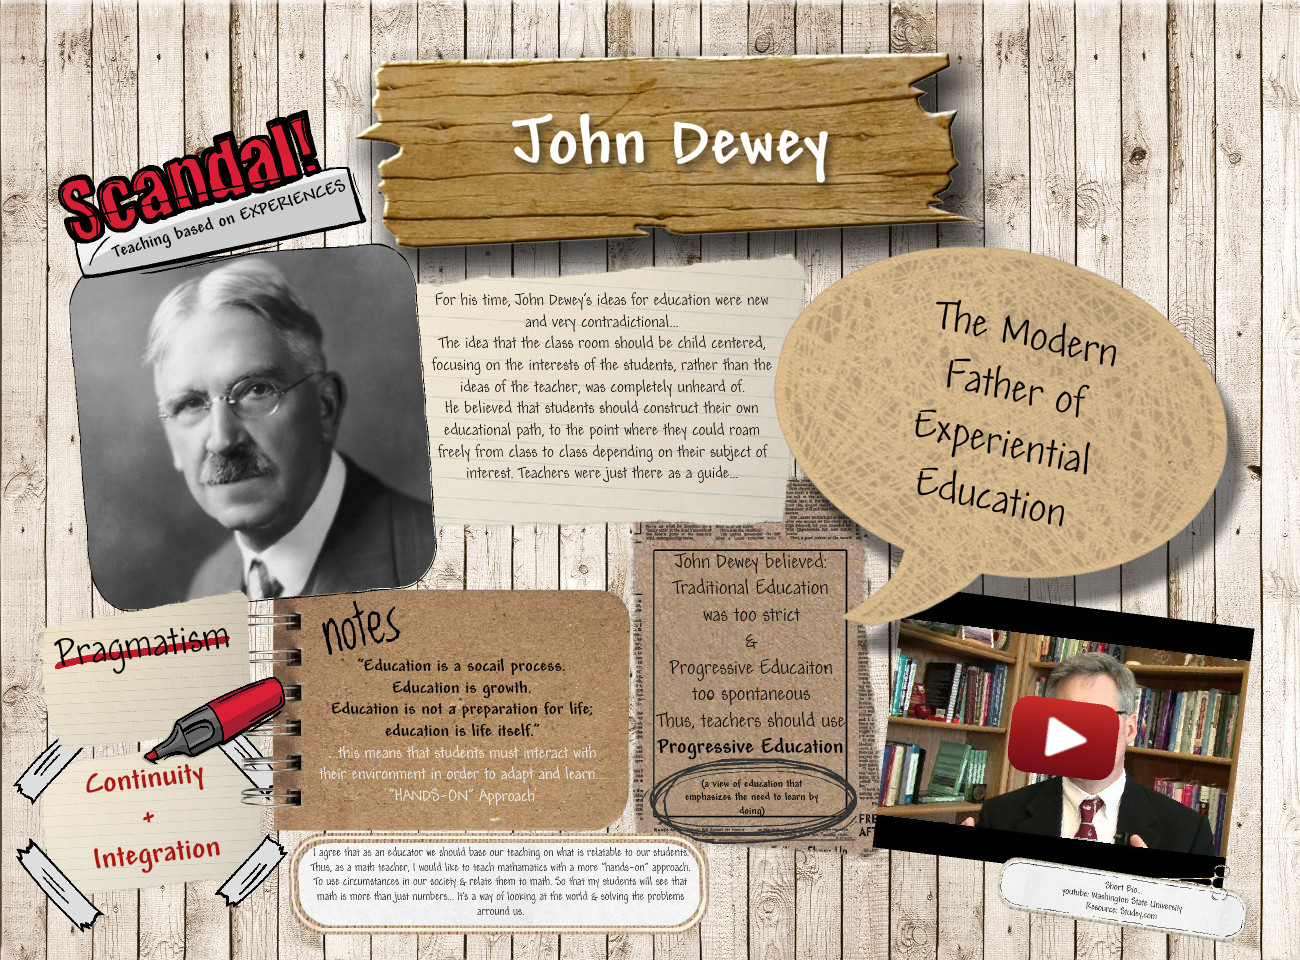 [2016] Carissa Brown: John Dewey